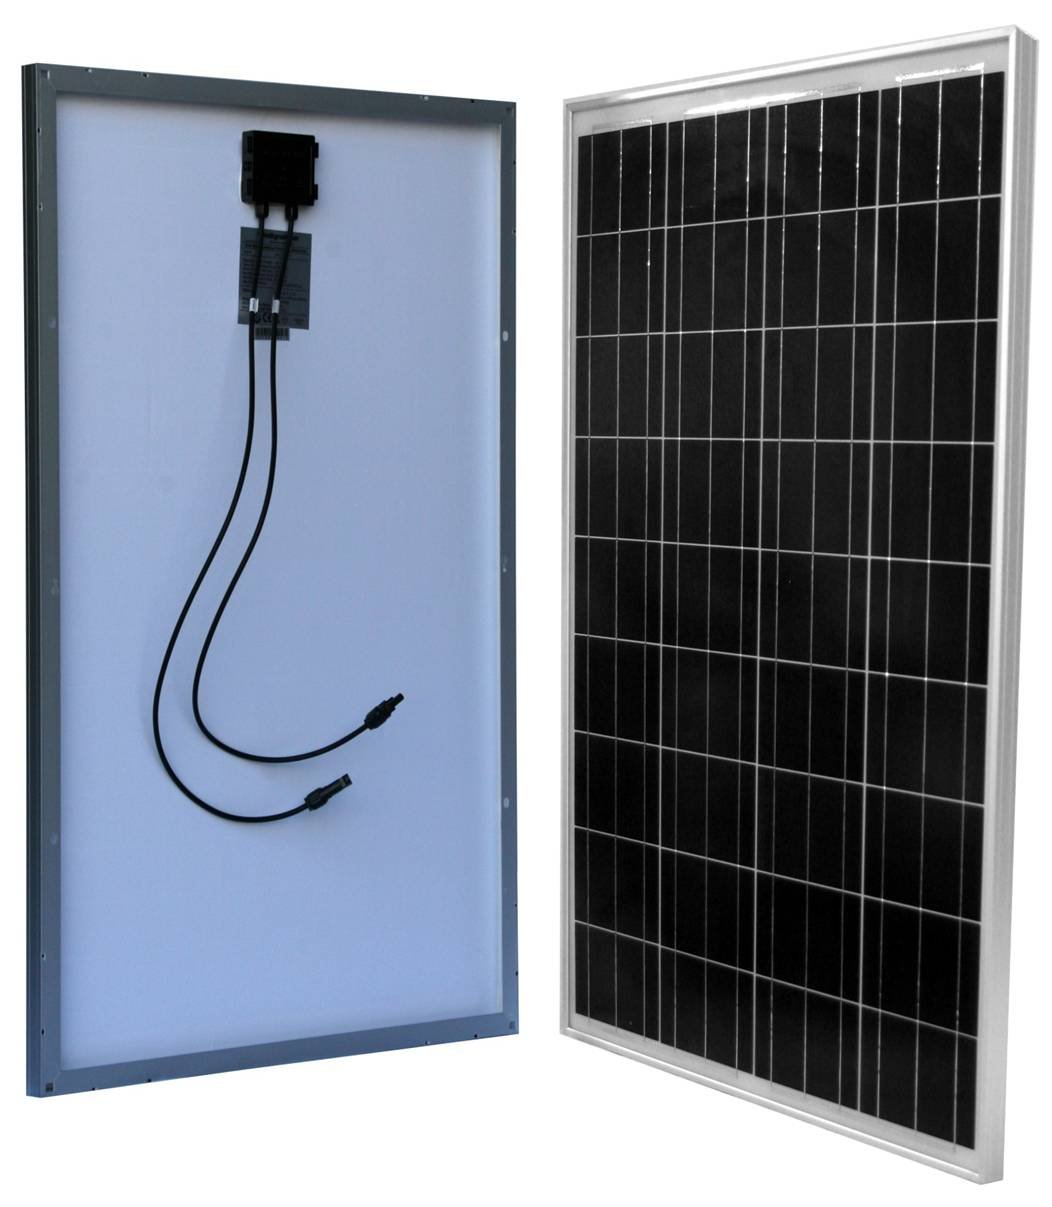 Amazon.com : WindyNation 100 Watt 100W Solar Panel for 12 Volt ...